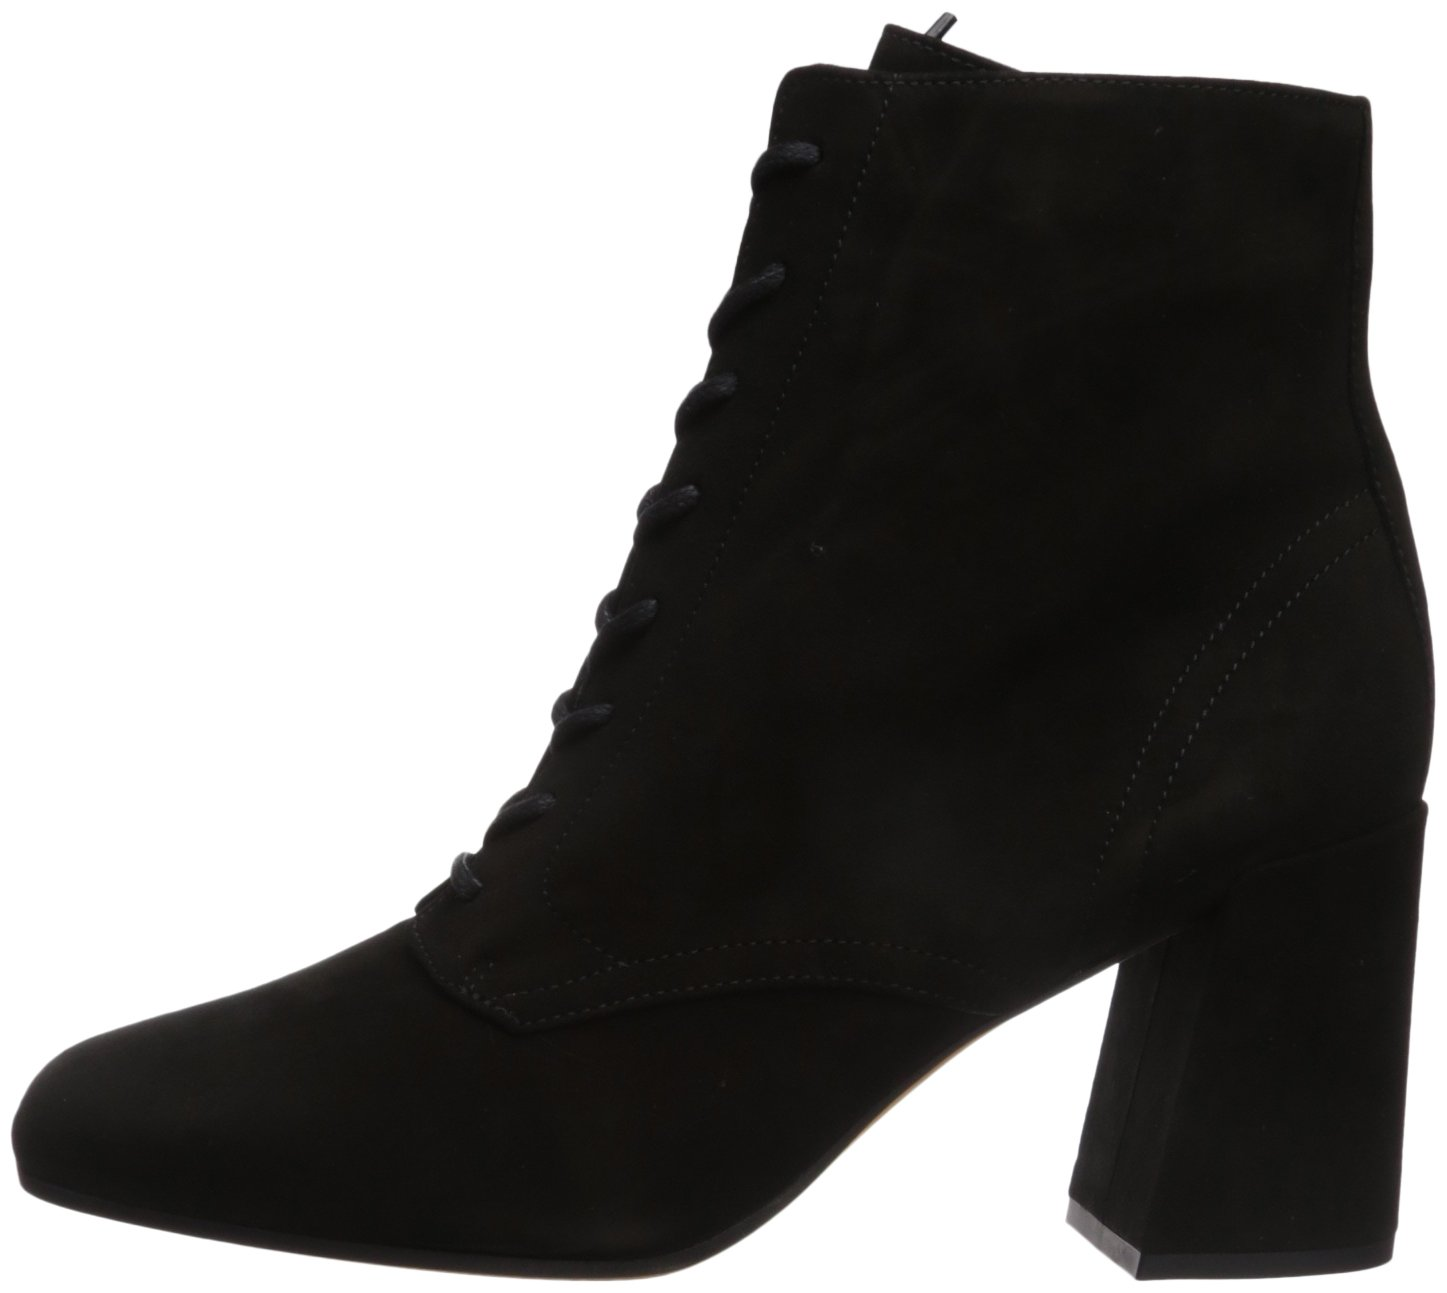 Vince B0722X5DYH Women's Halle Fashion Boot B0722X5DYH Vince 6.5 B(M) US|Black fa6b14